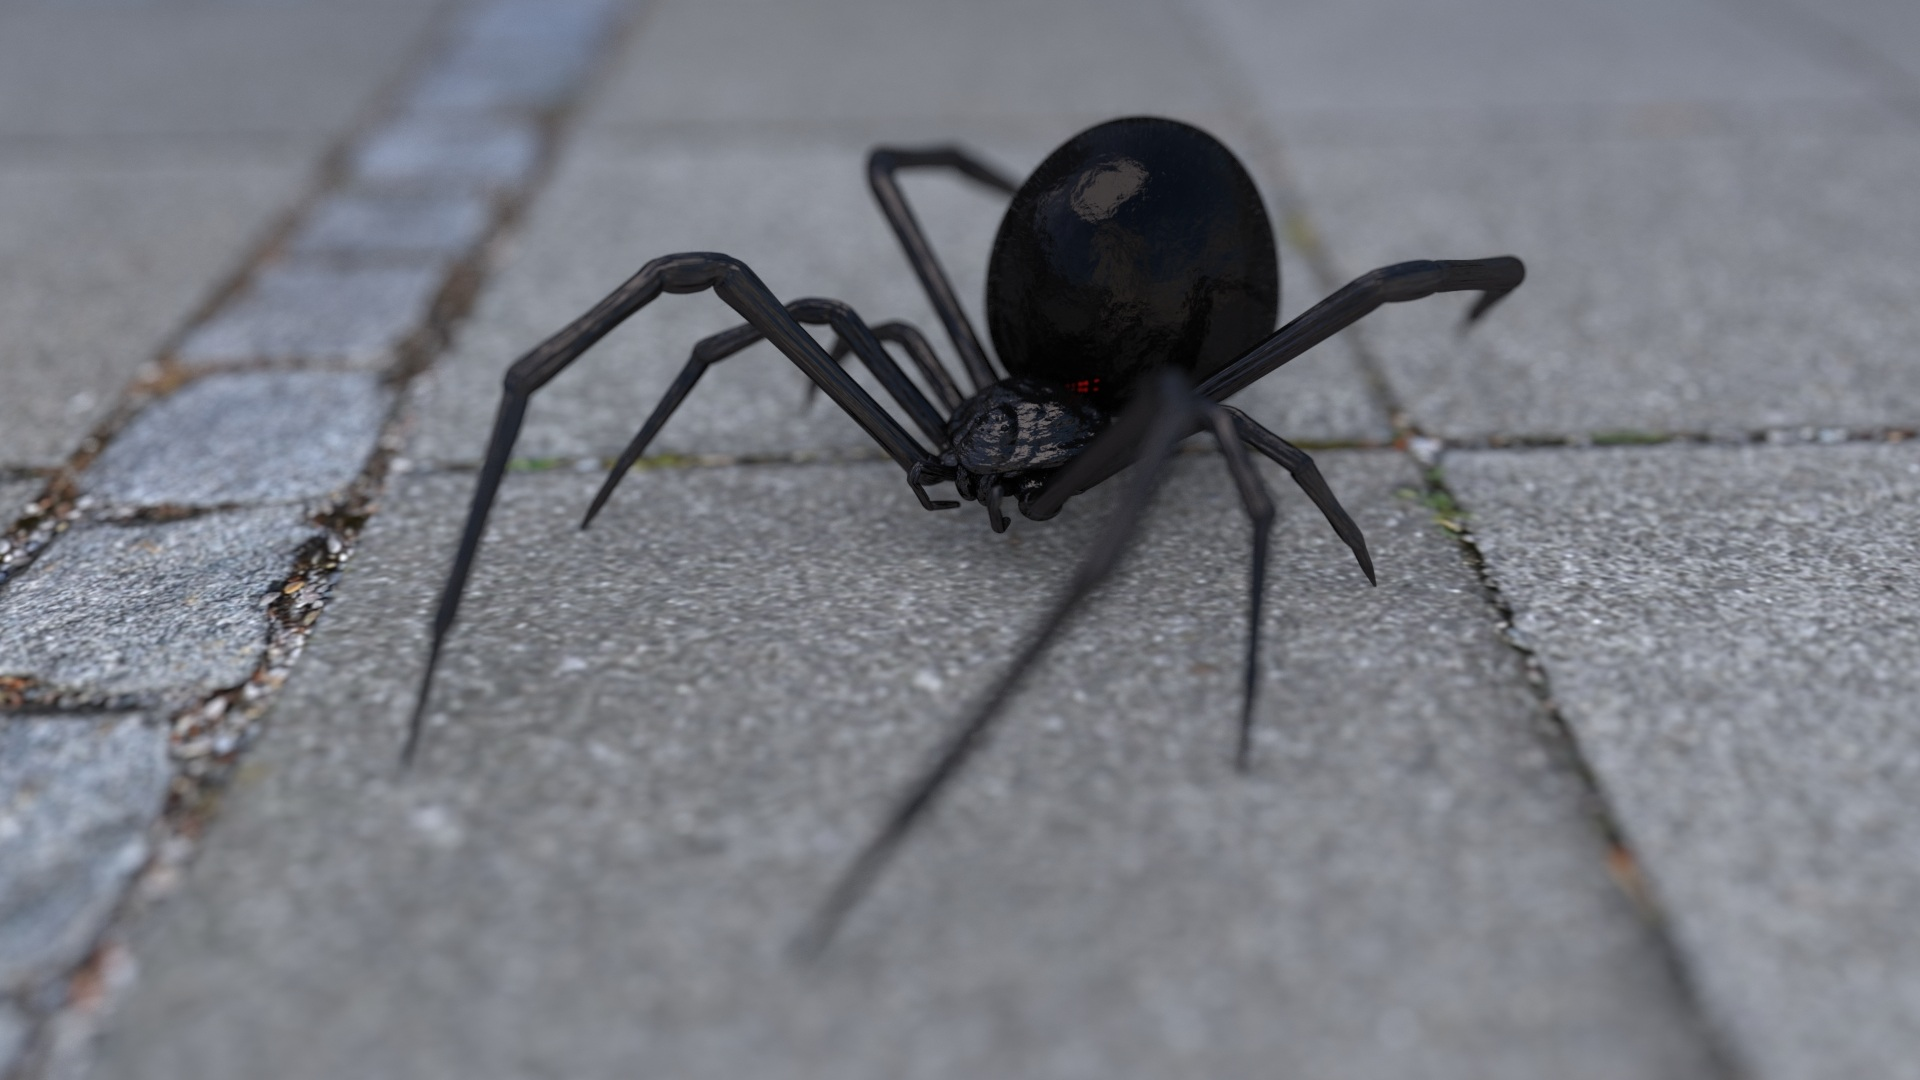 How to Treat a Spider Bite at Home and When to Seek Medical Help